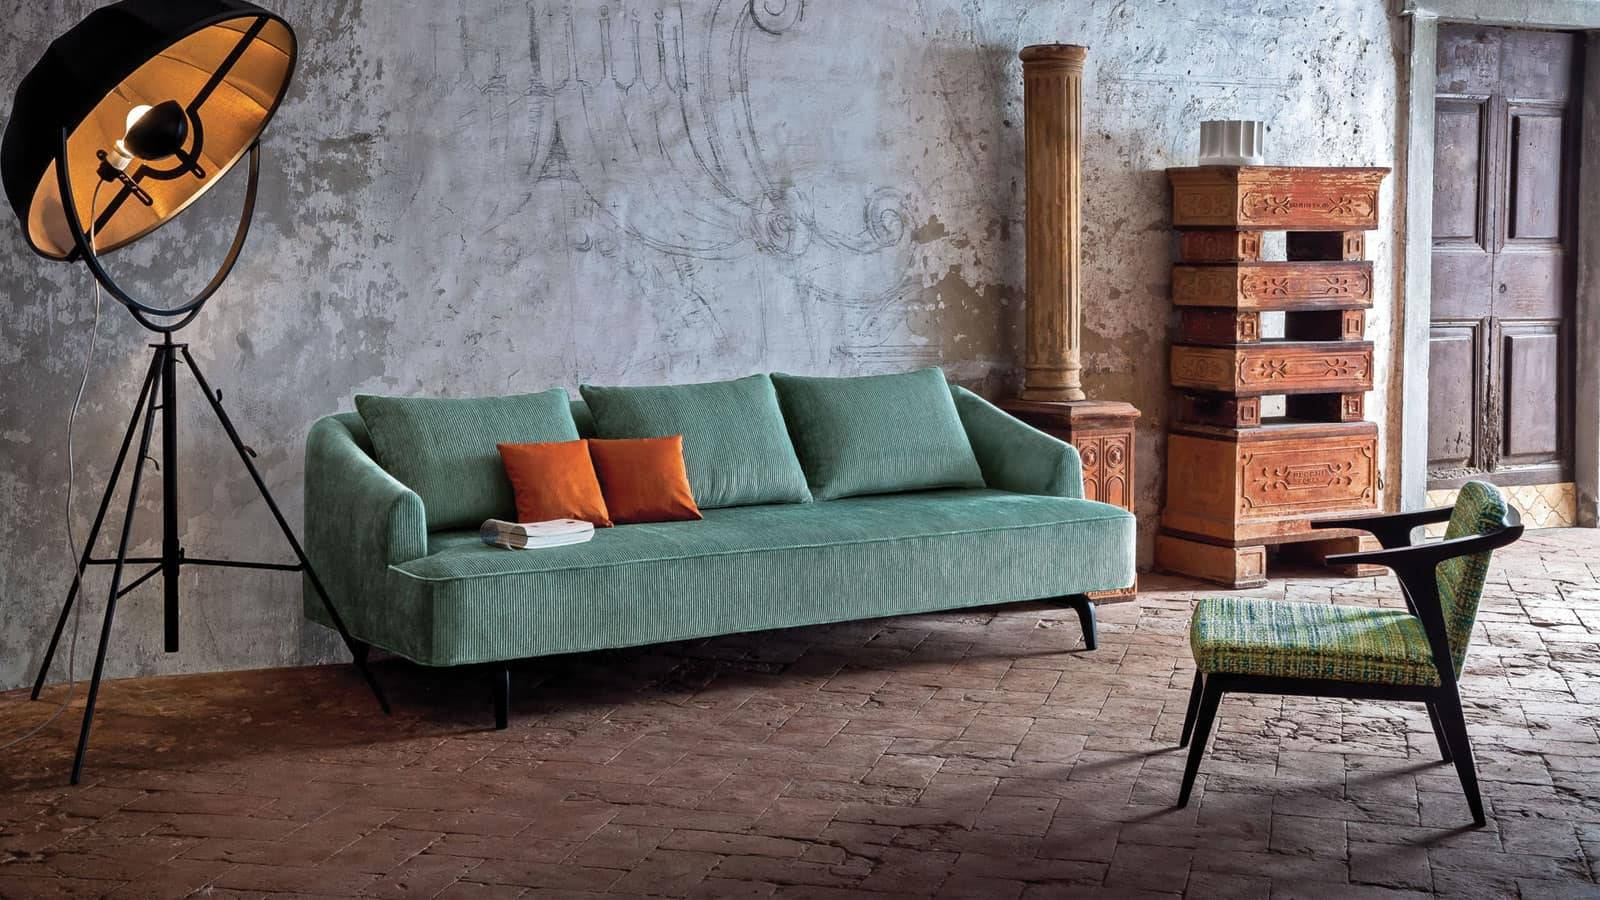 luxury sofa by Rubelli